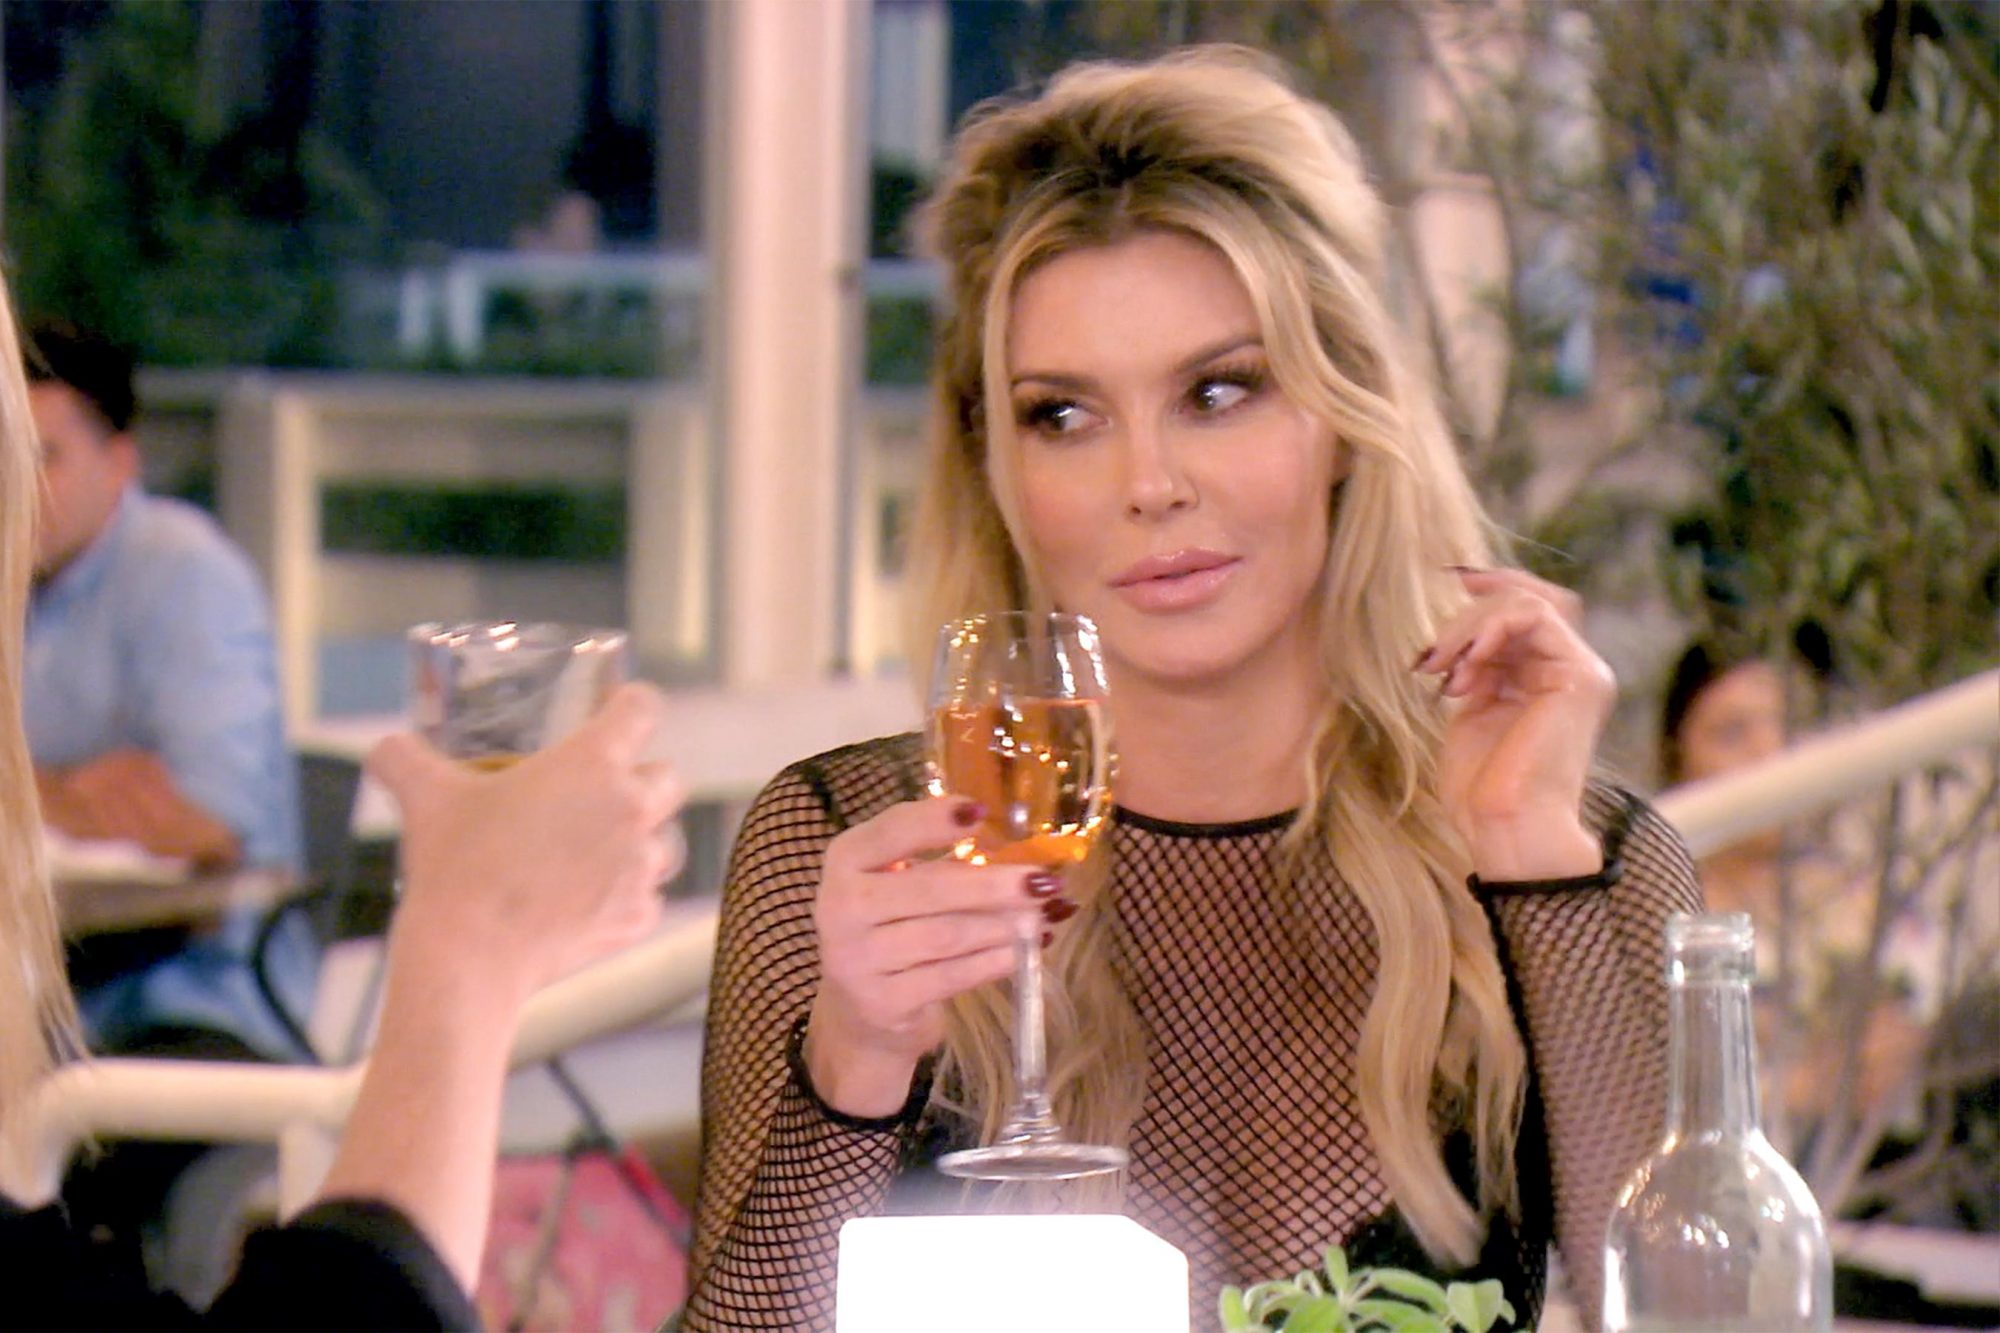 The Real Housewives of Beverly Hills (screen grab) Season 9, Ep 17 | Air Date: June 4, 2019 CR: Bravo